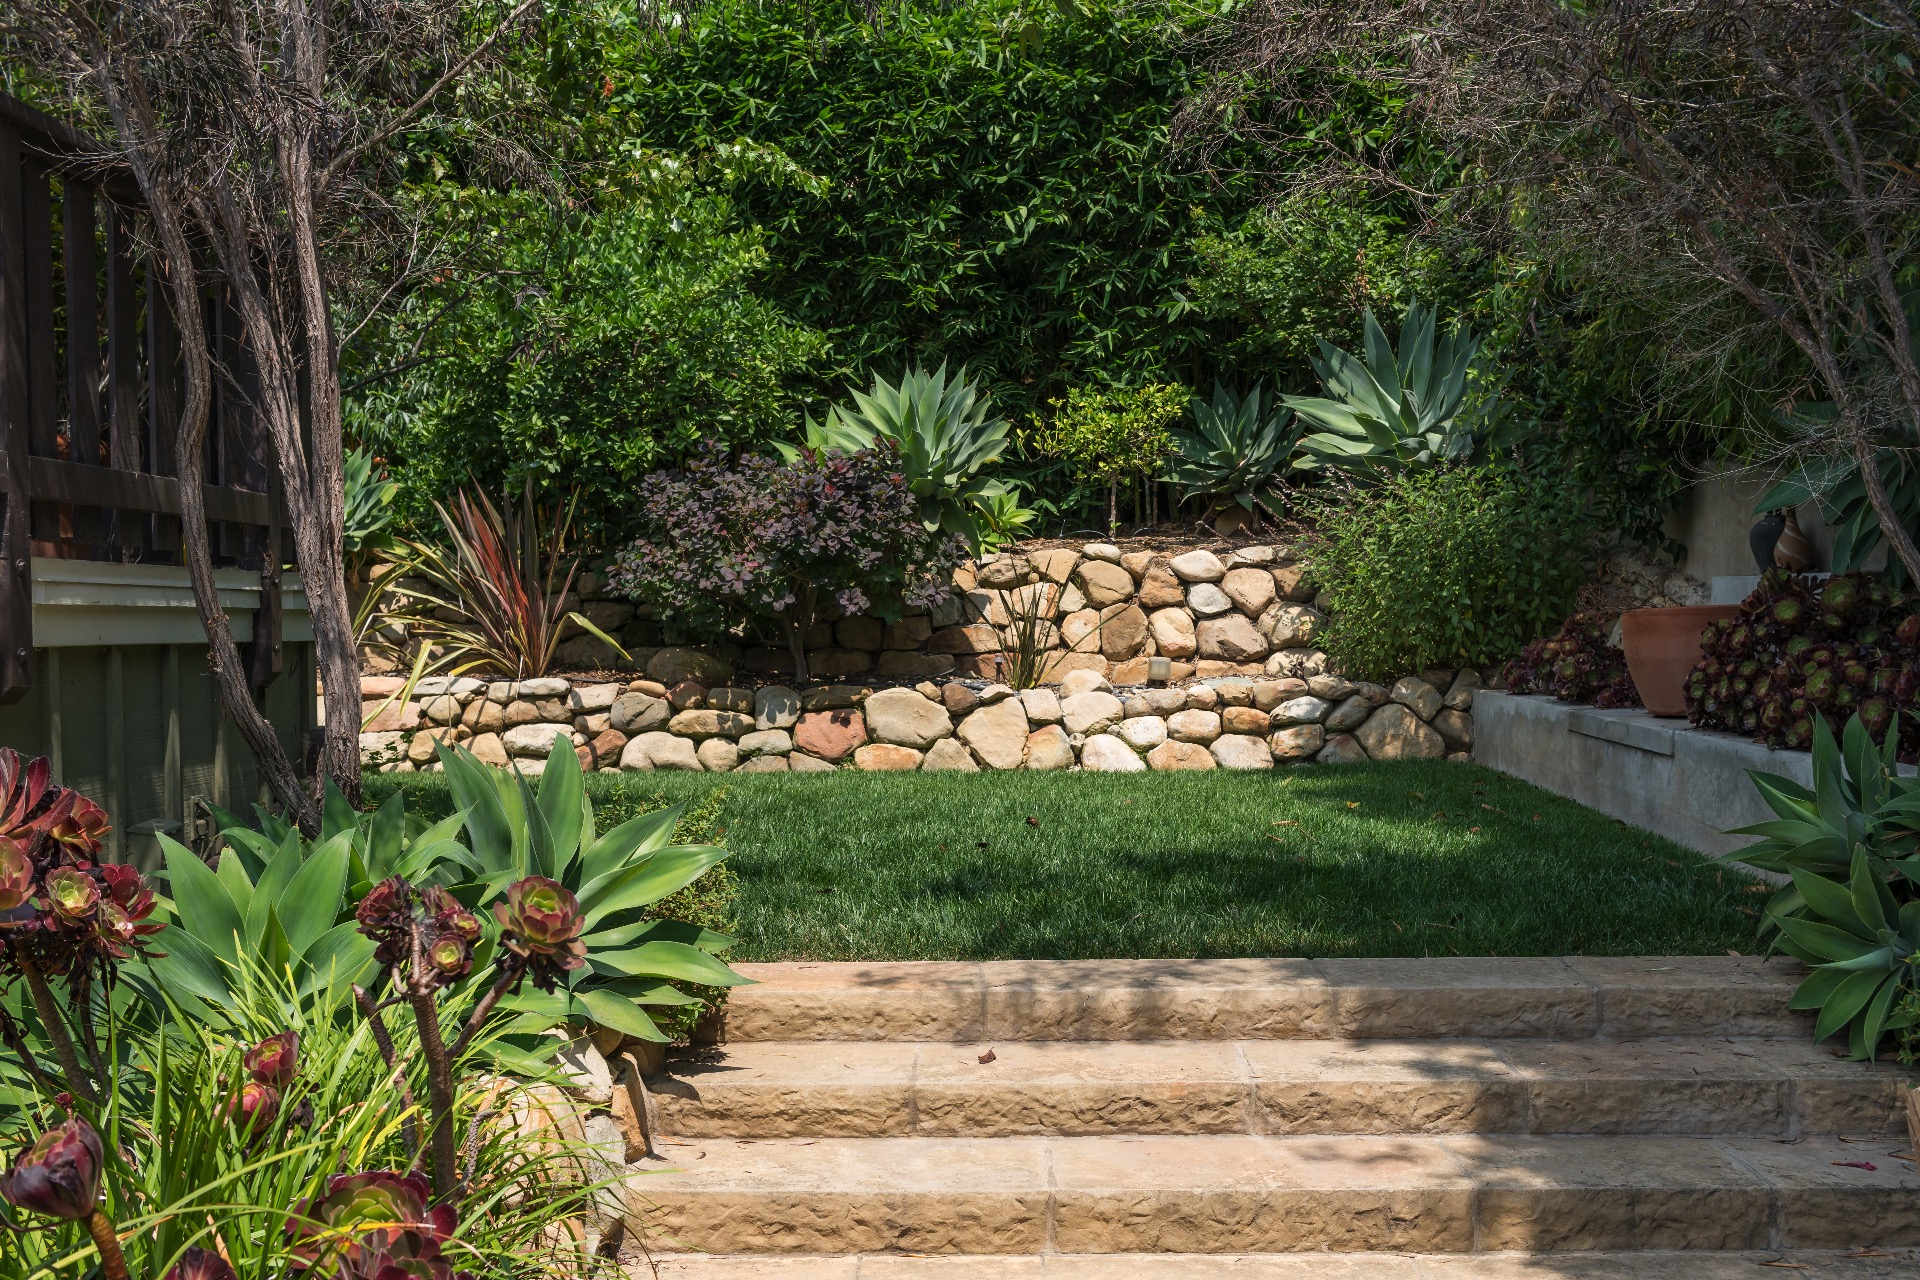 Landscaped backyard with grass and citrus trees